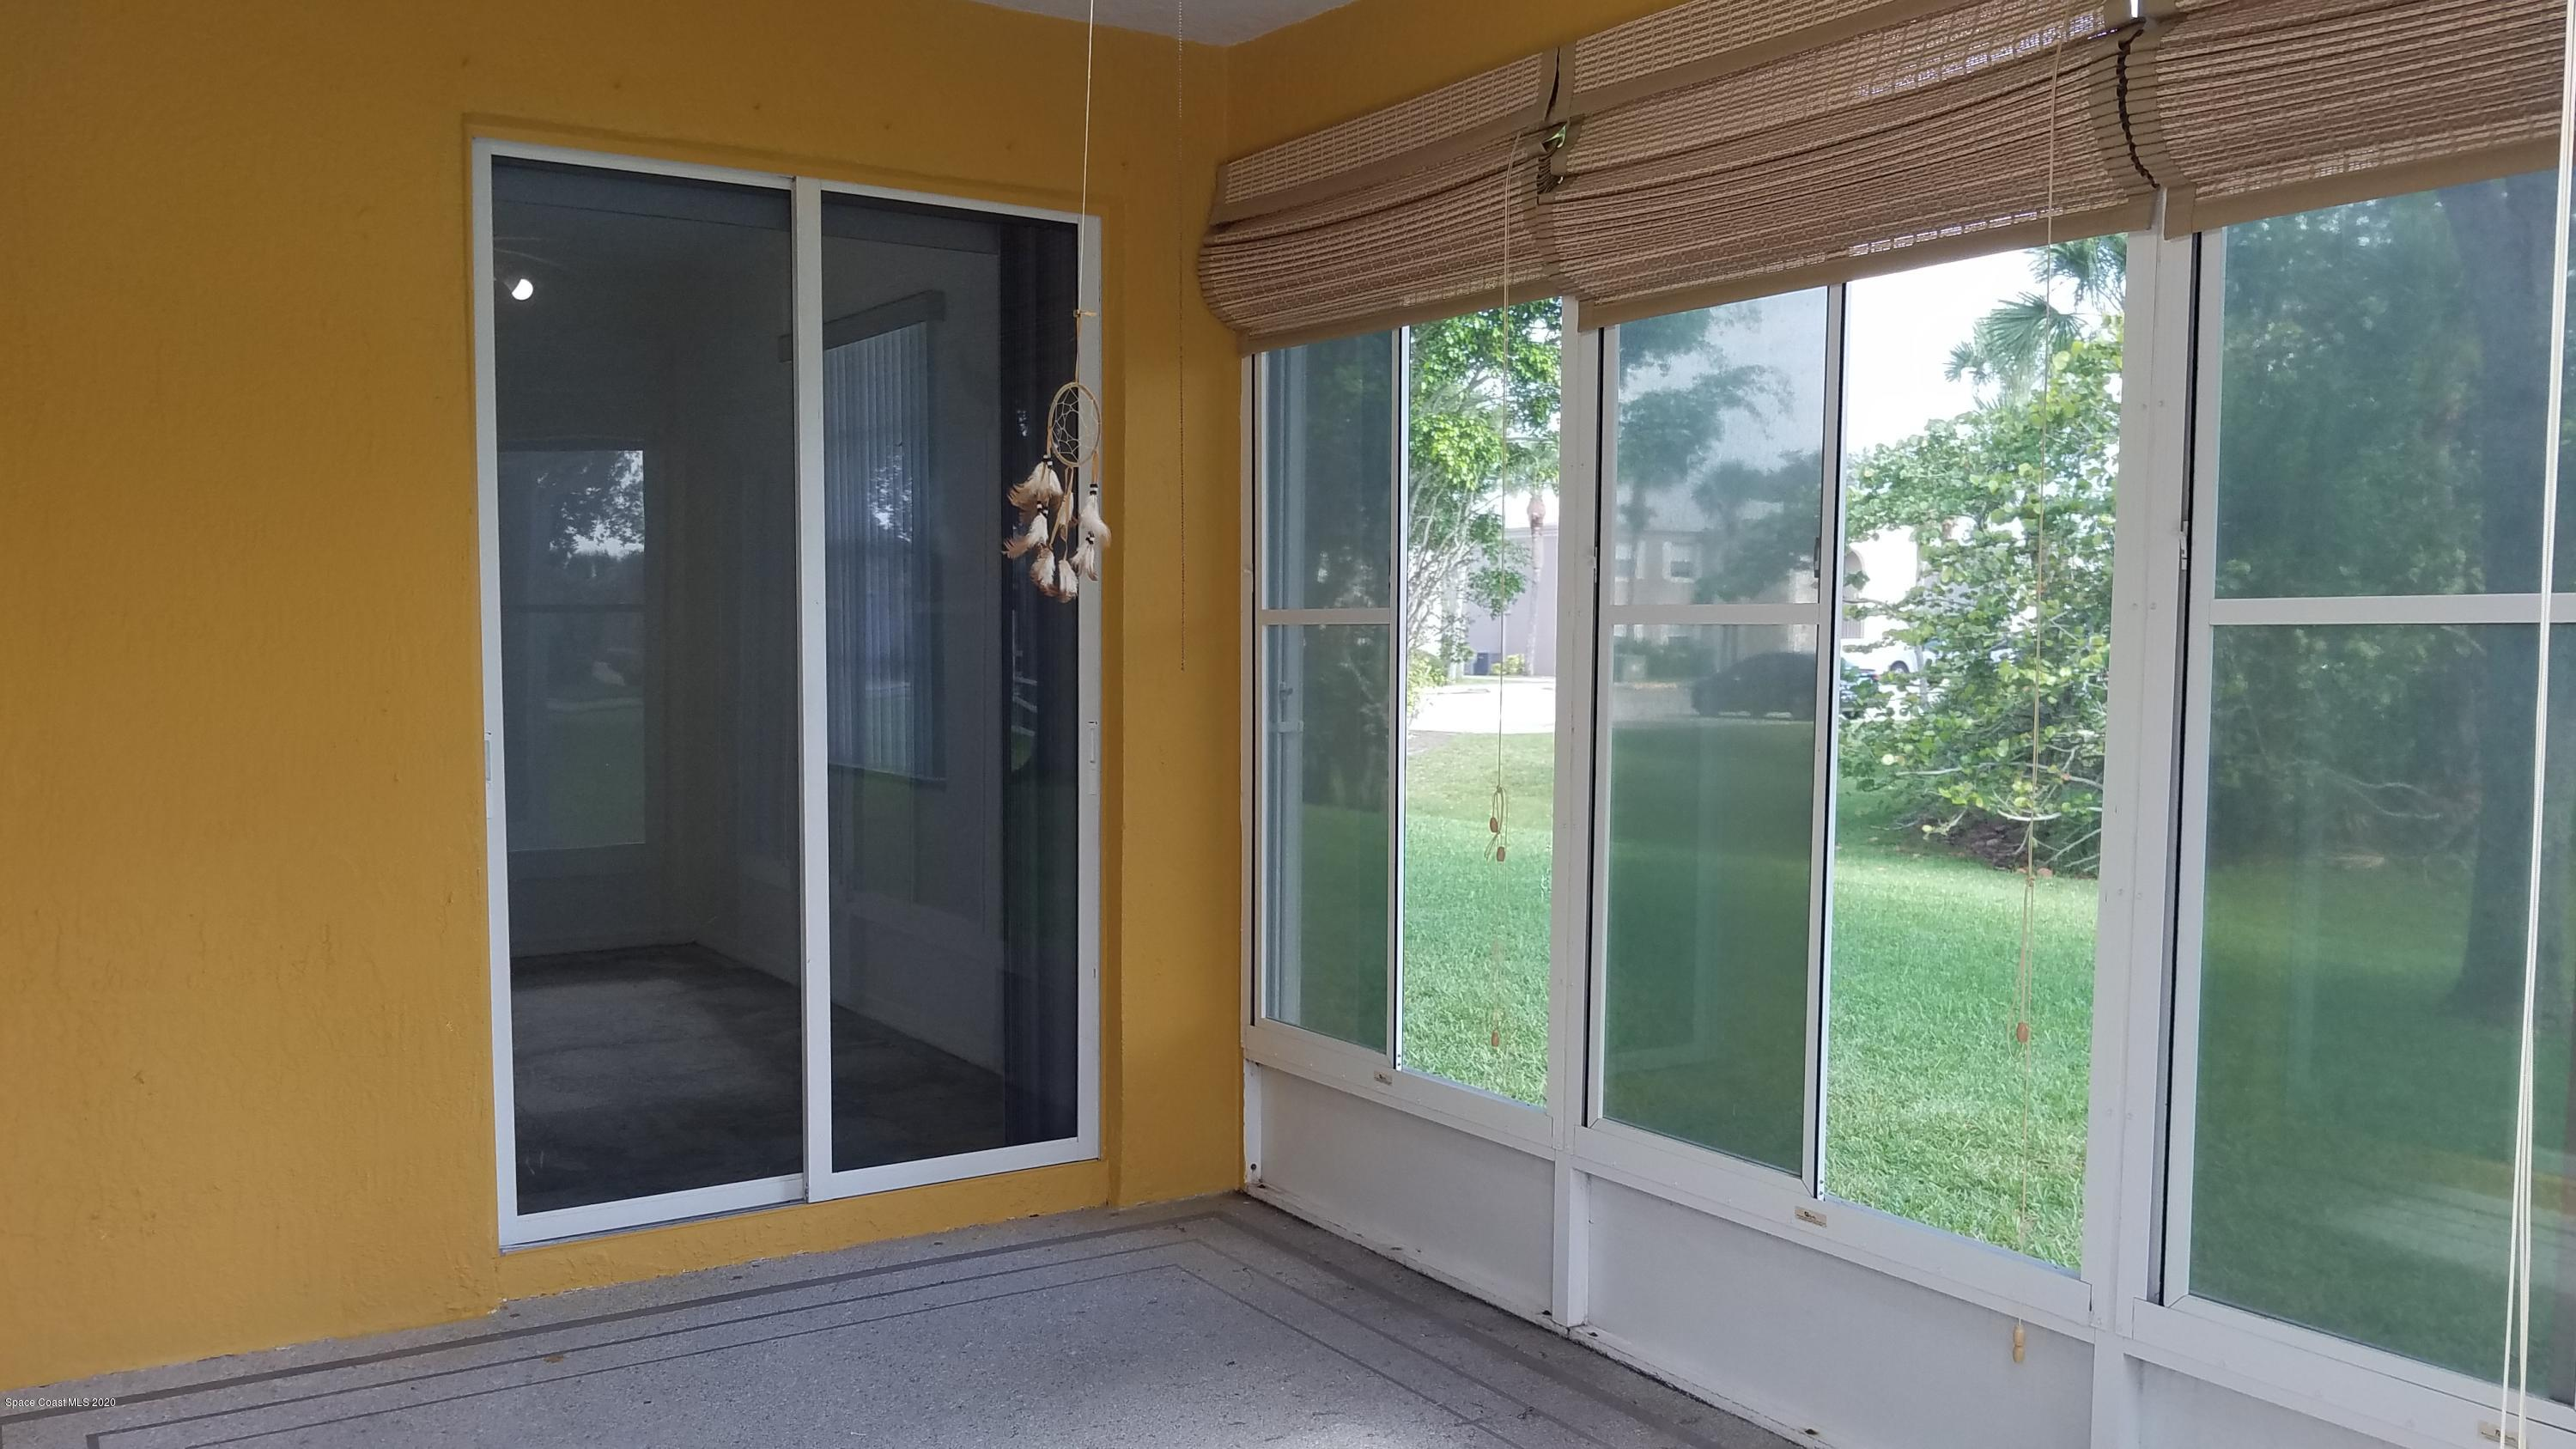 Vinyl Windows & Window Treatments